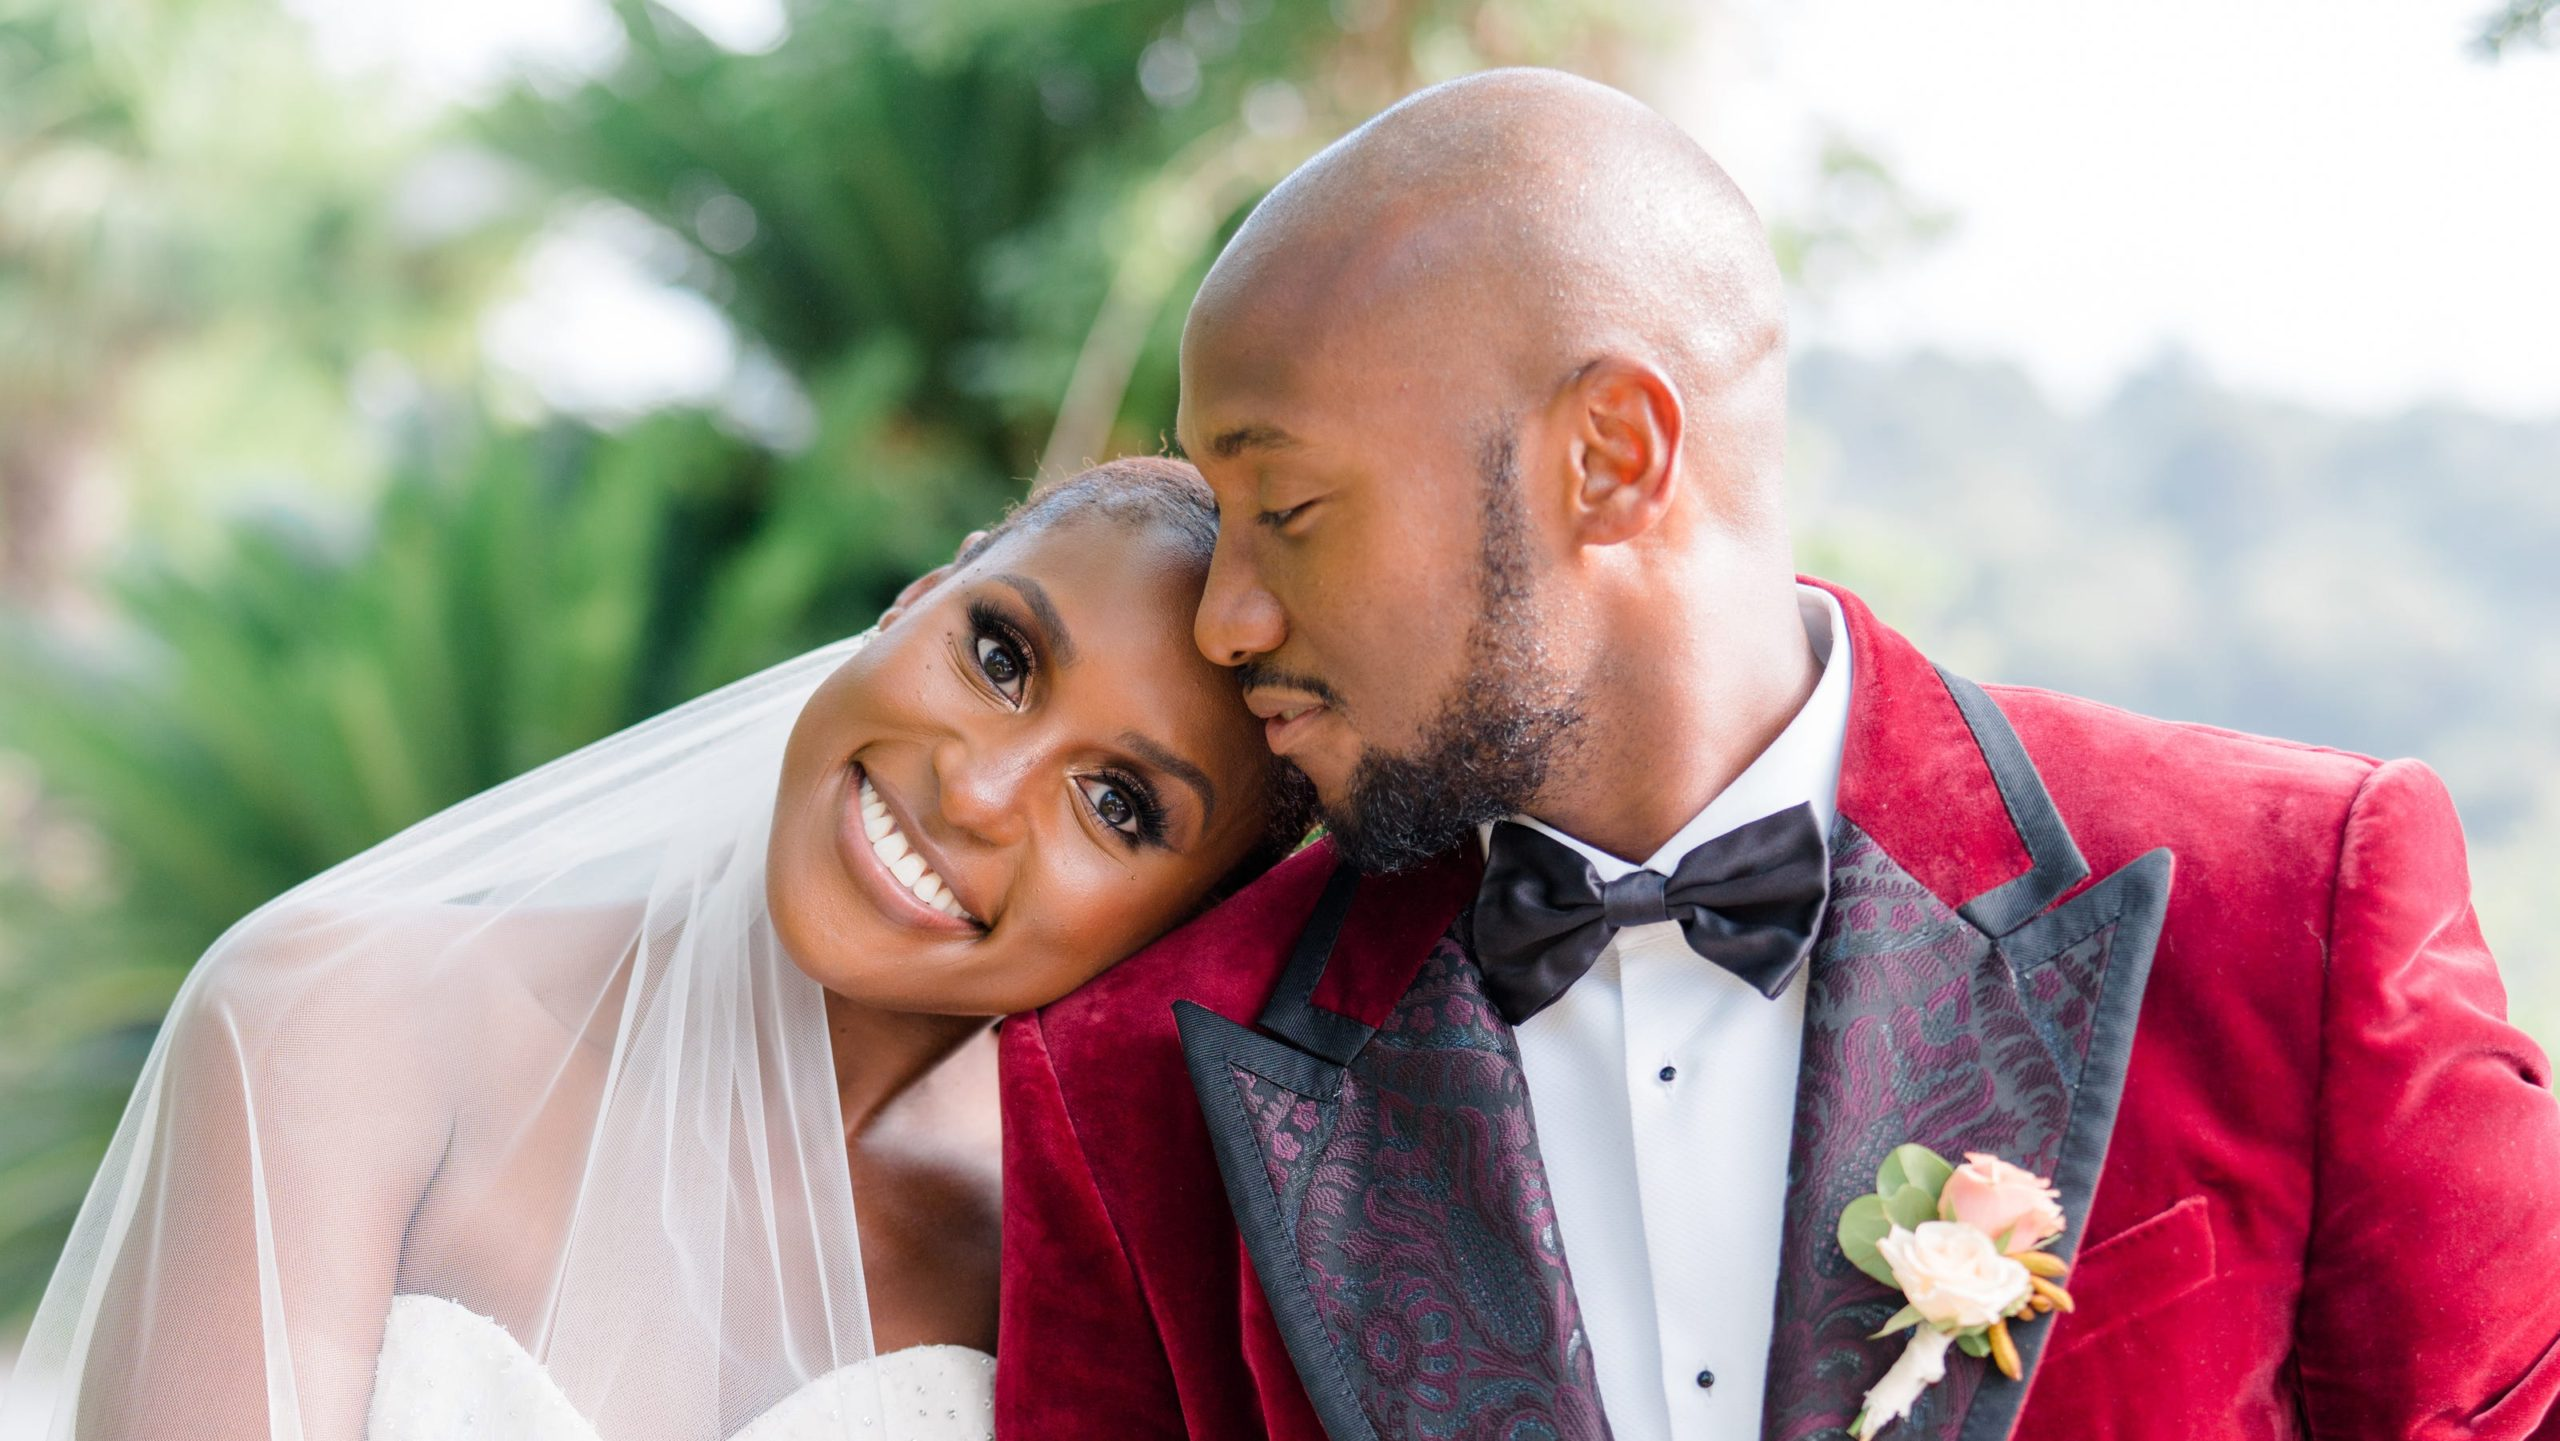 All about Issa Rae's intimate wedding ceremony in France.